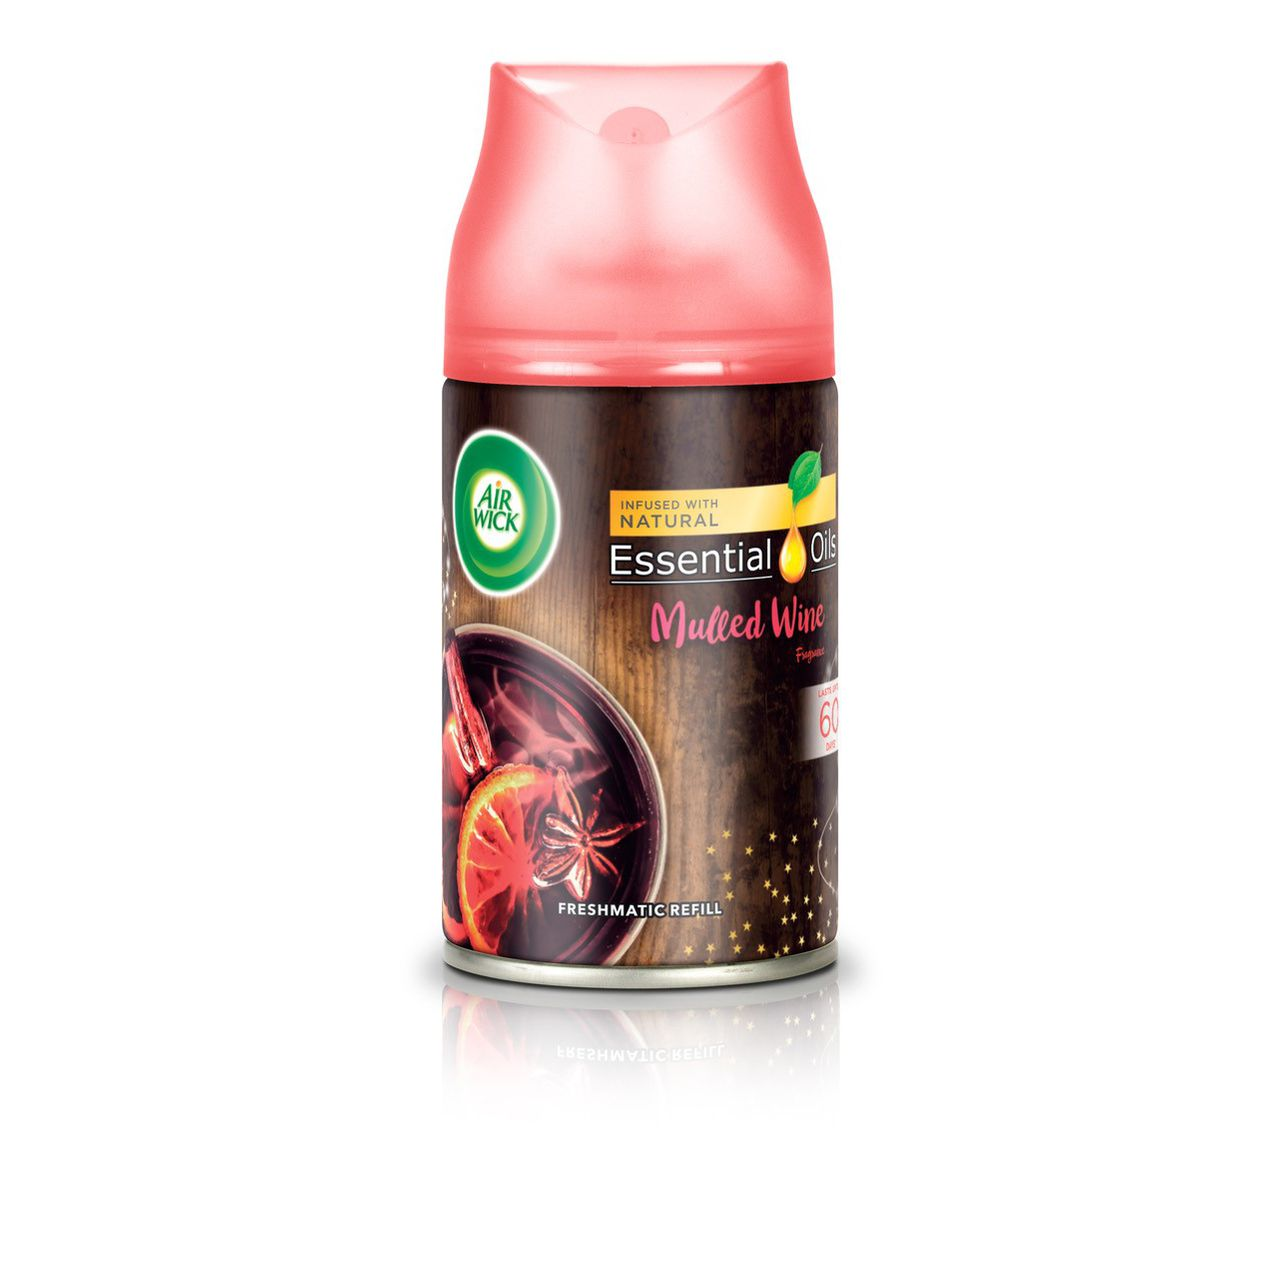 Air Wick Freshmatic Autospray Single Refill Mulled Wine